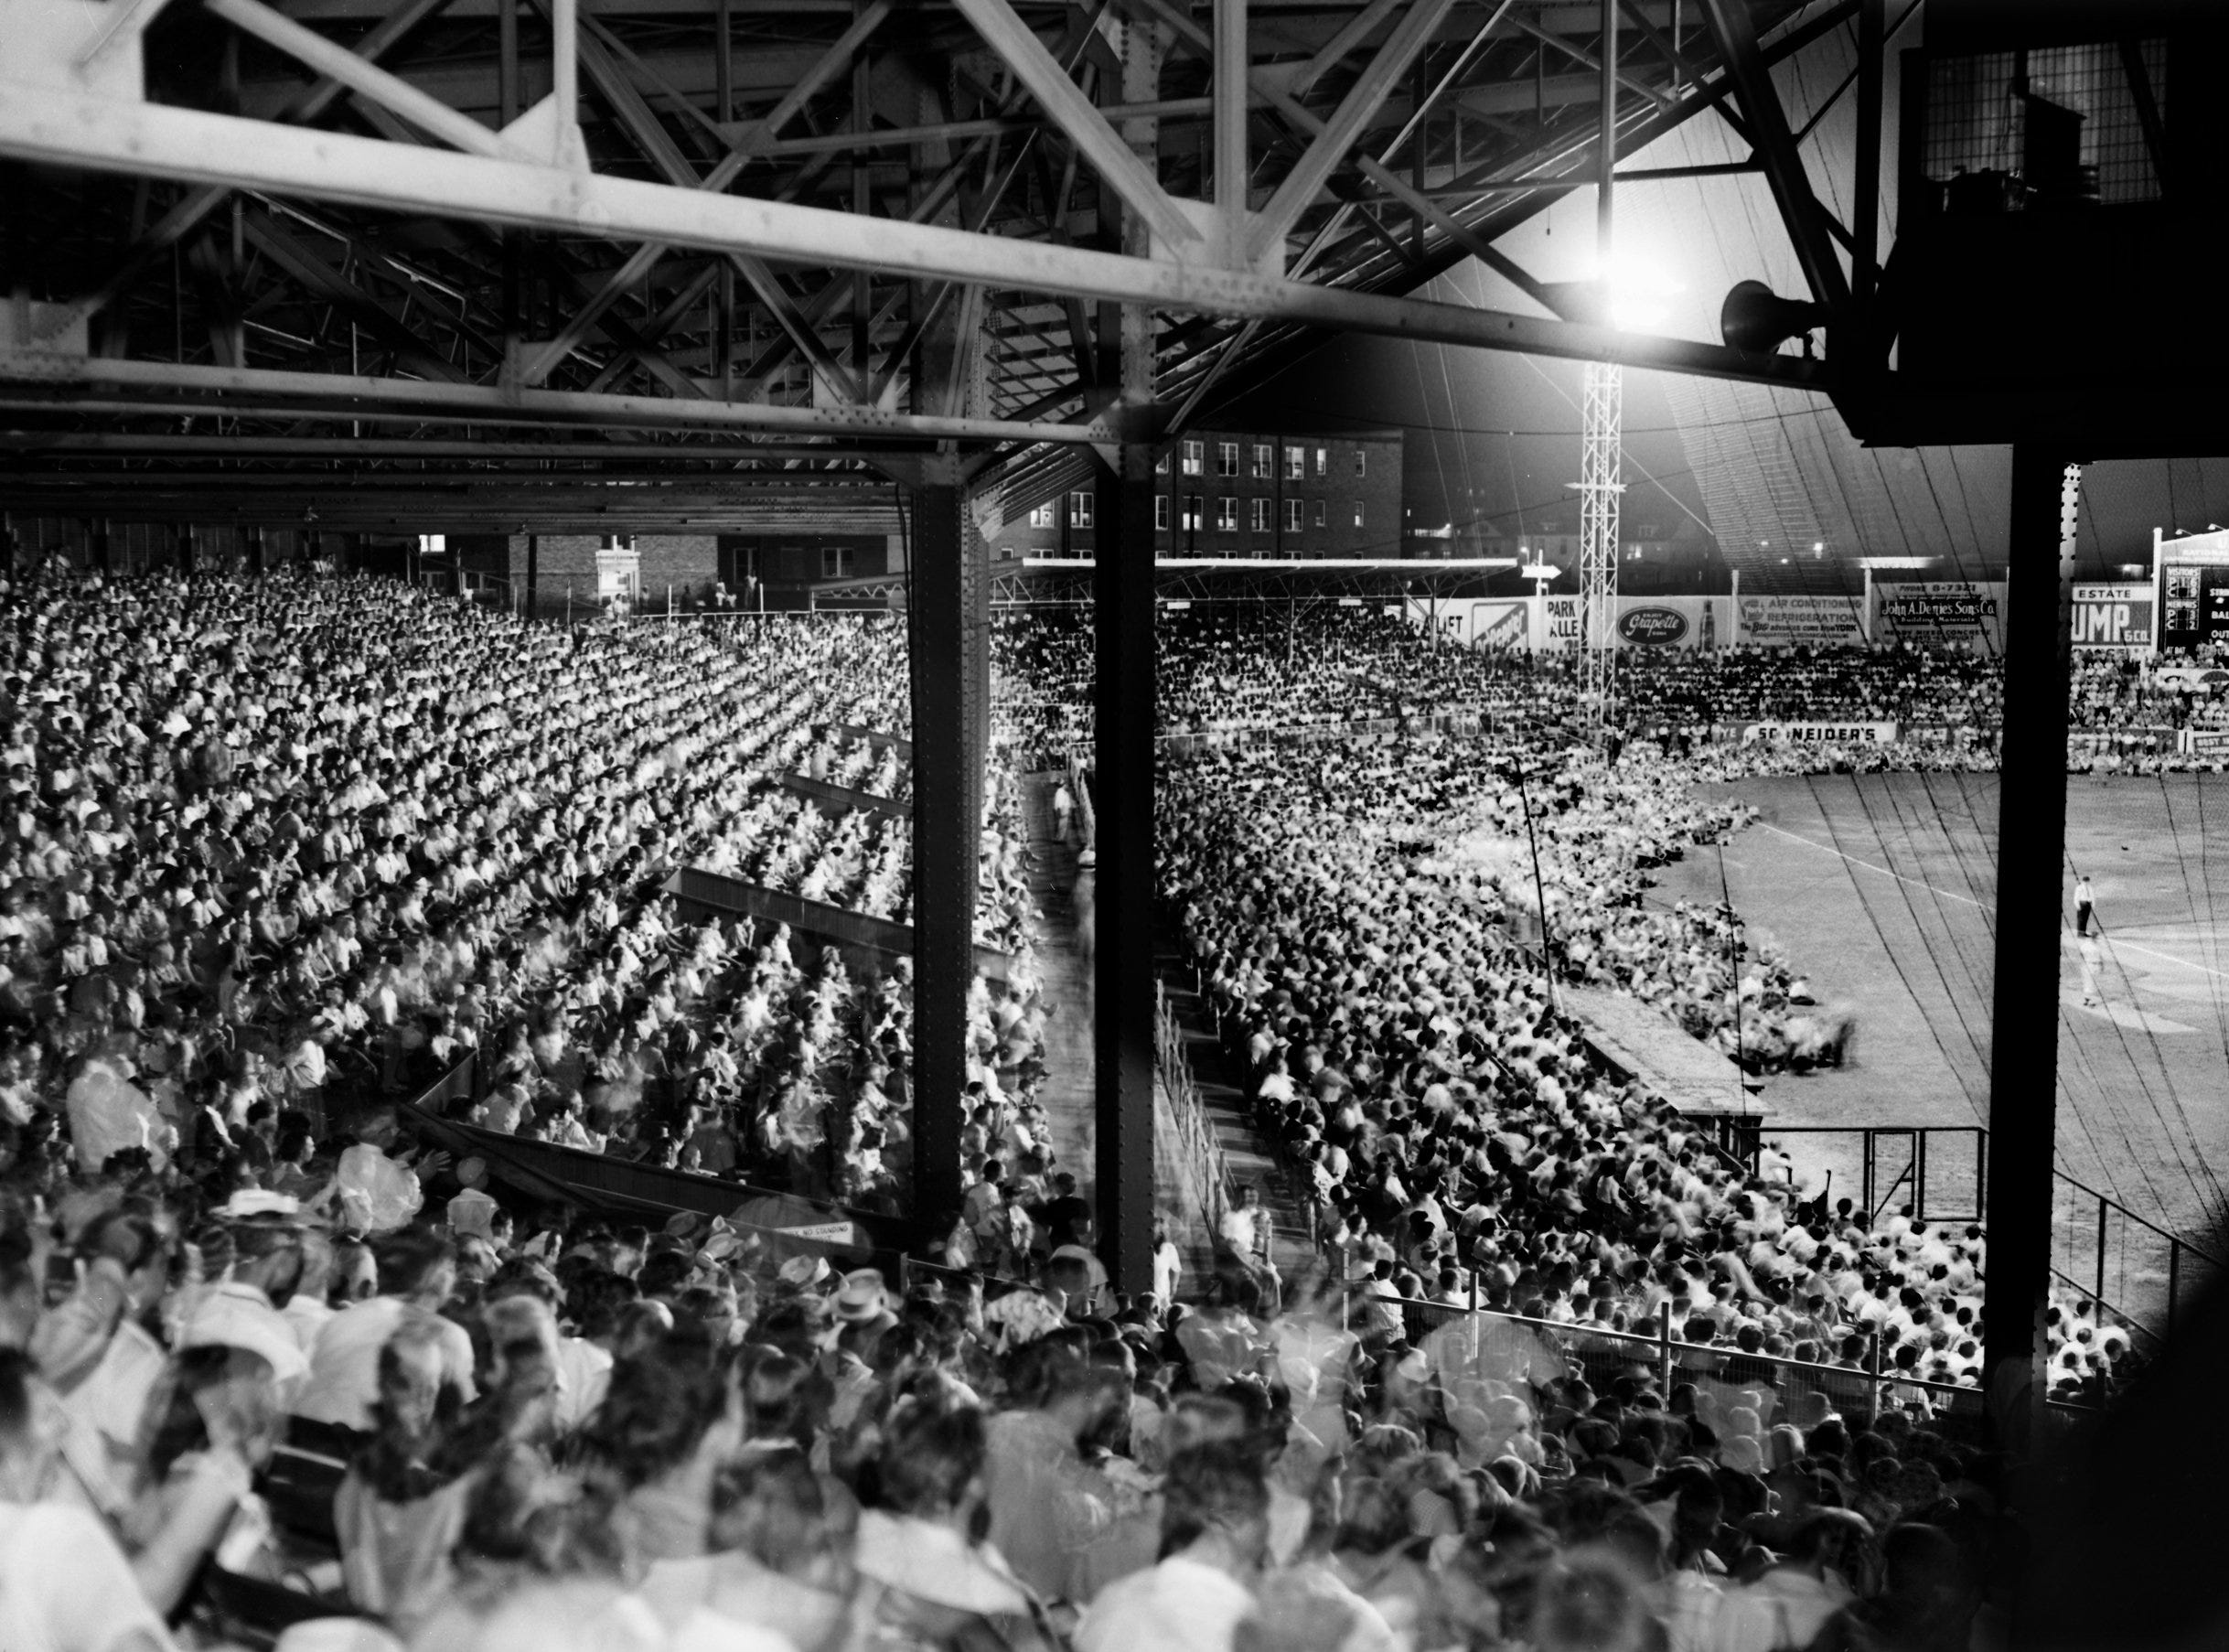 The largest crowd of the season turned out on 3 Sep 1953 at Russwood Park to watch baseball and a variety show.  The crowd of 14,343 was rewarded with an 8-4 Chick victory over Nashville. The Chicks' Bill Wilson hit three home runs and a single to drive in five runs.